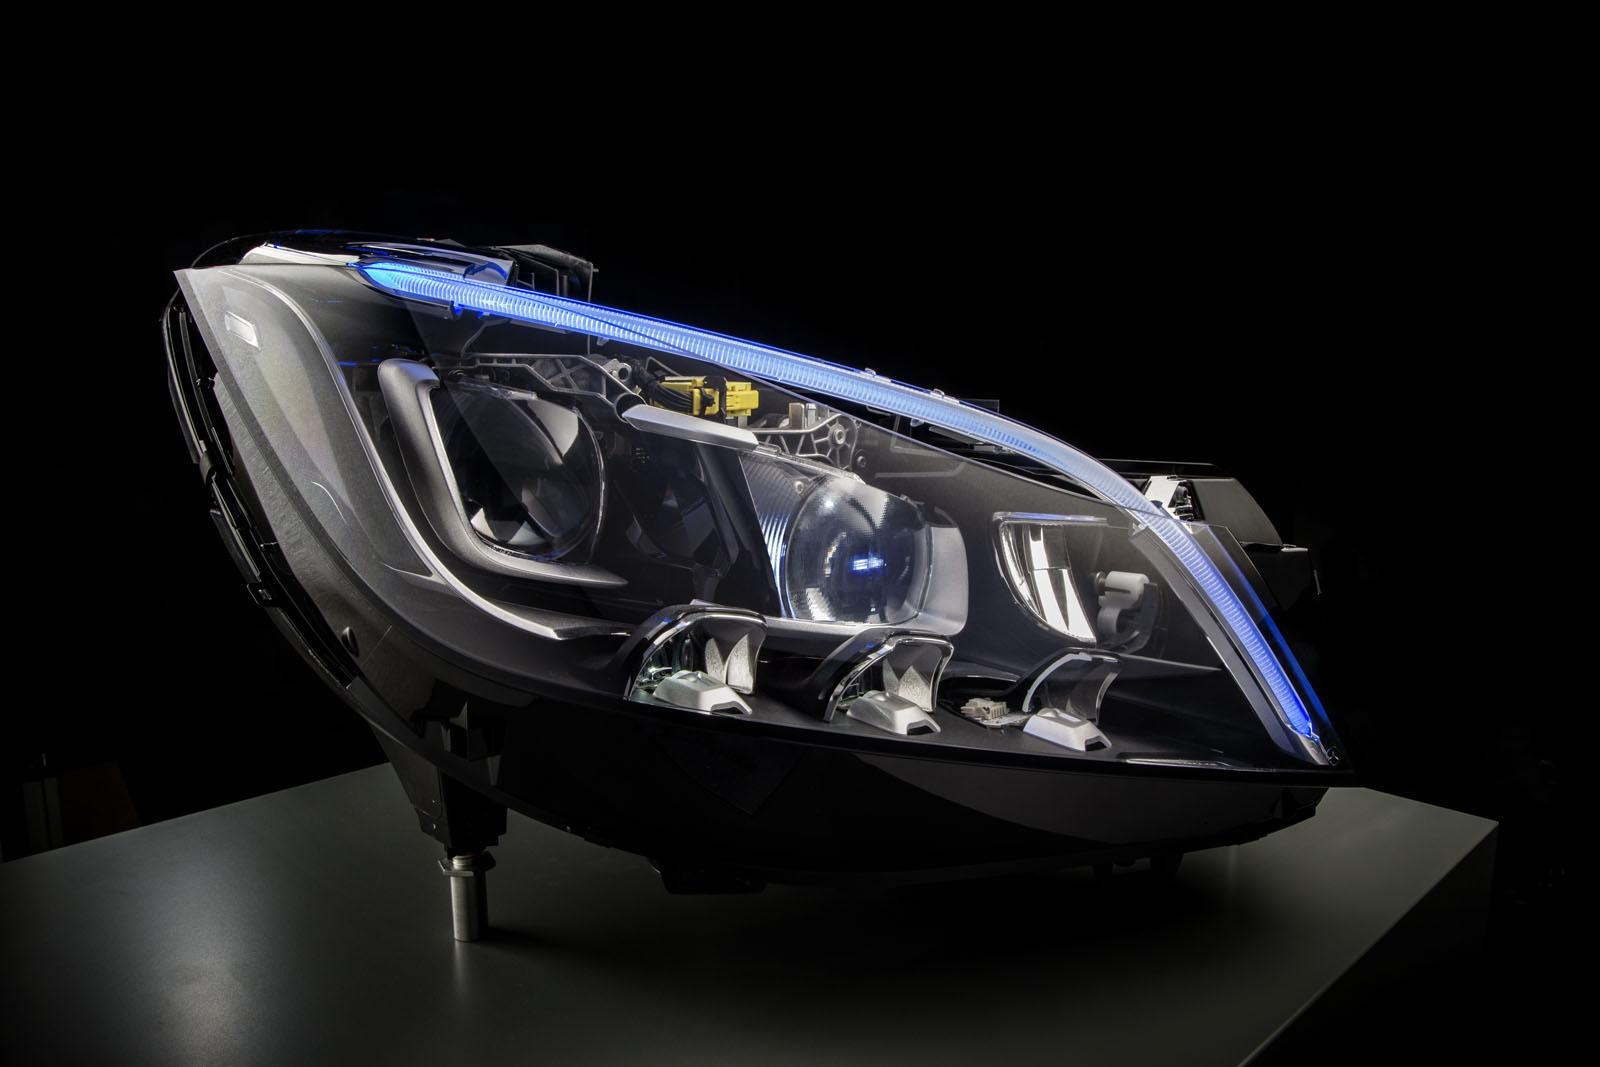 Mercedes-Benz Multibeam LED Headlight Tech to Adopt 84 LEDs in 2015 ...